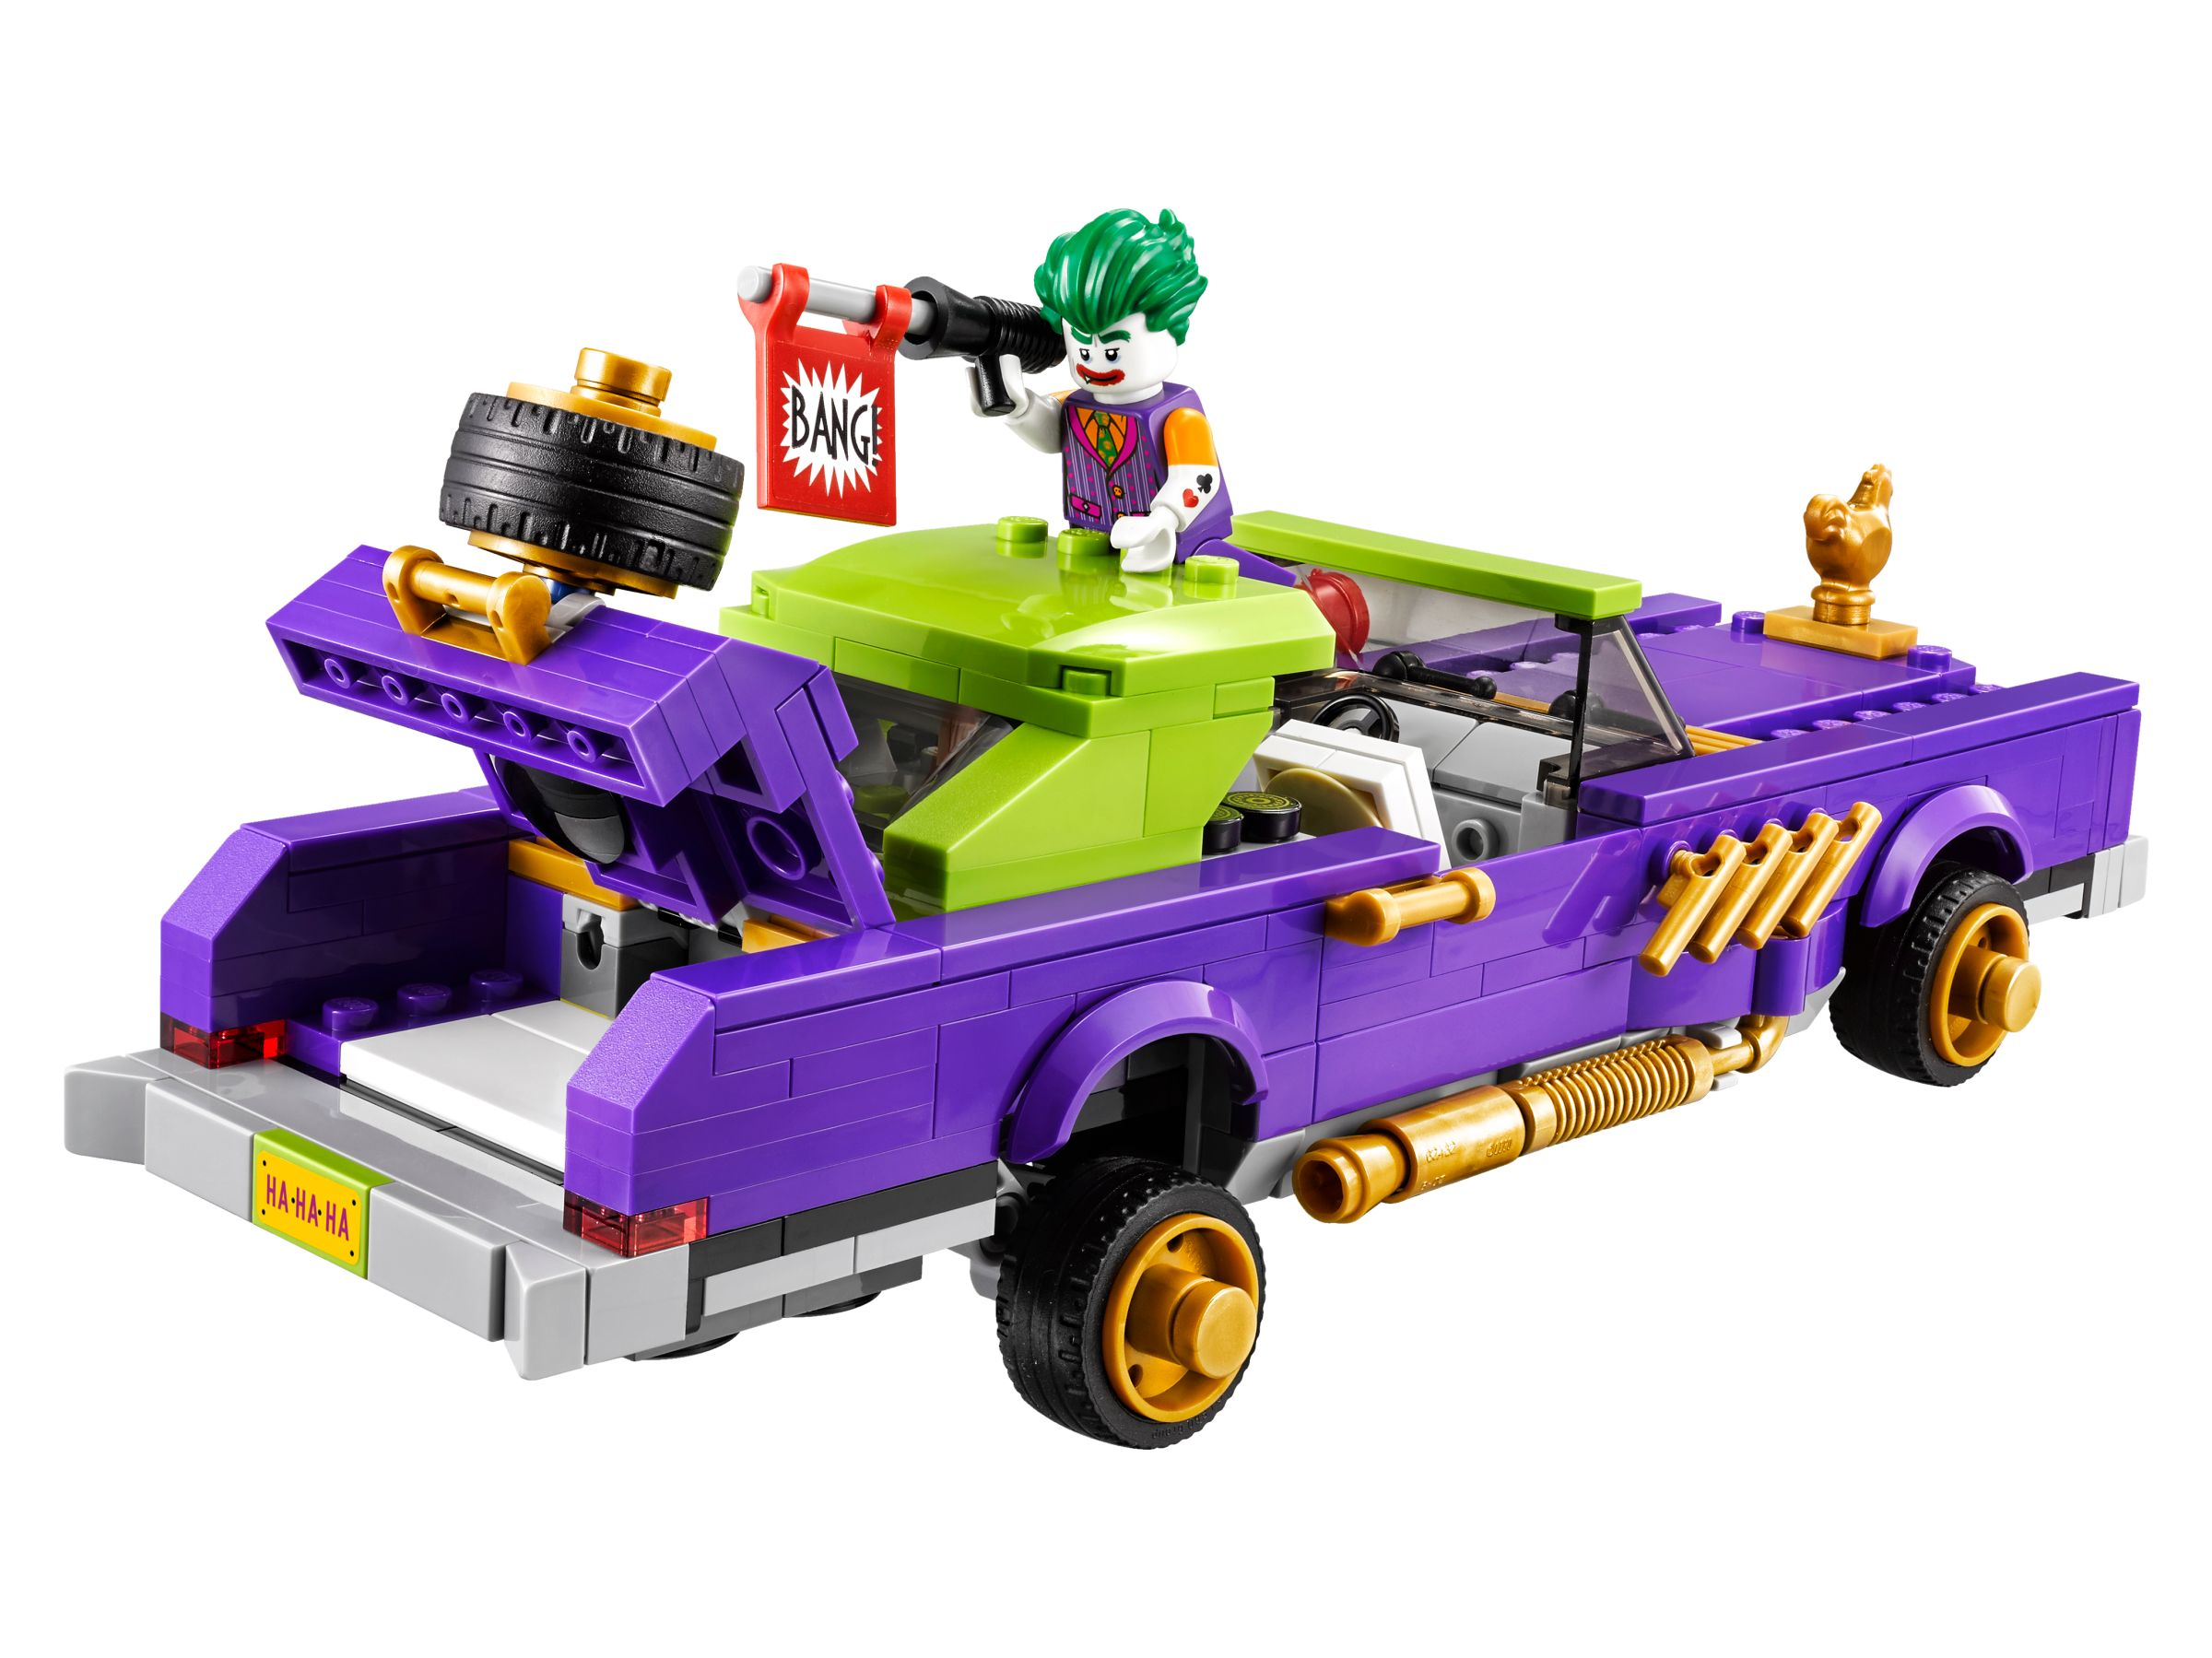 LEGO The LEGO Batman Movie 70906 Jokers berüchtigter Lowrider LEGO_70906_alt3.jpg